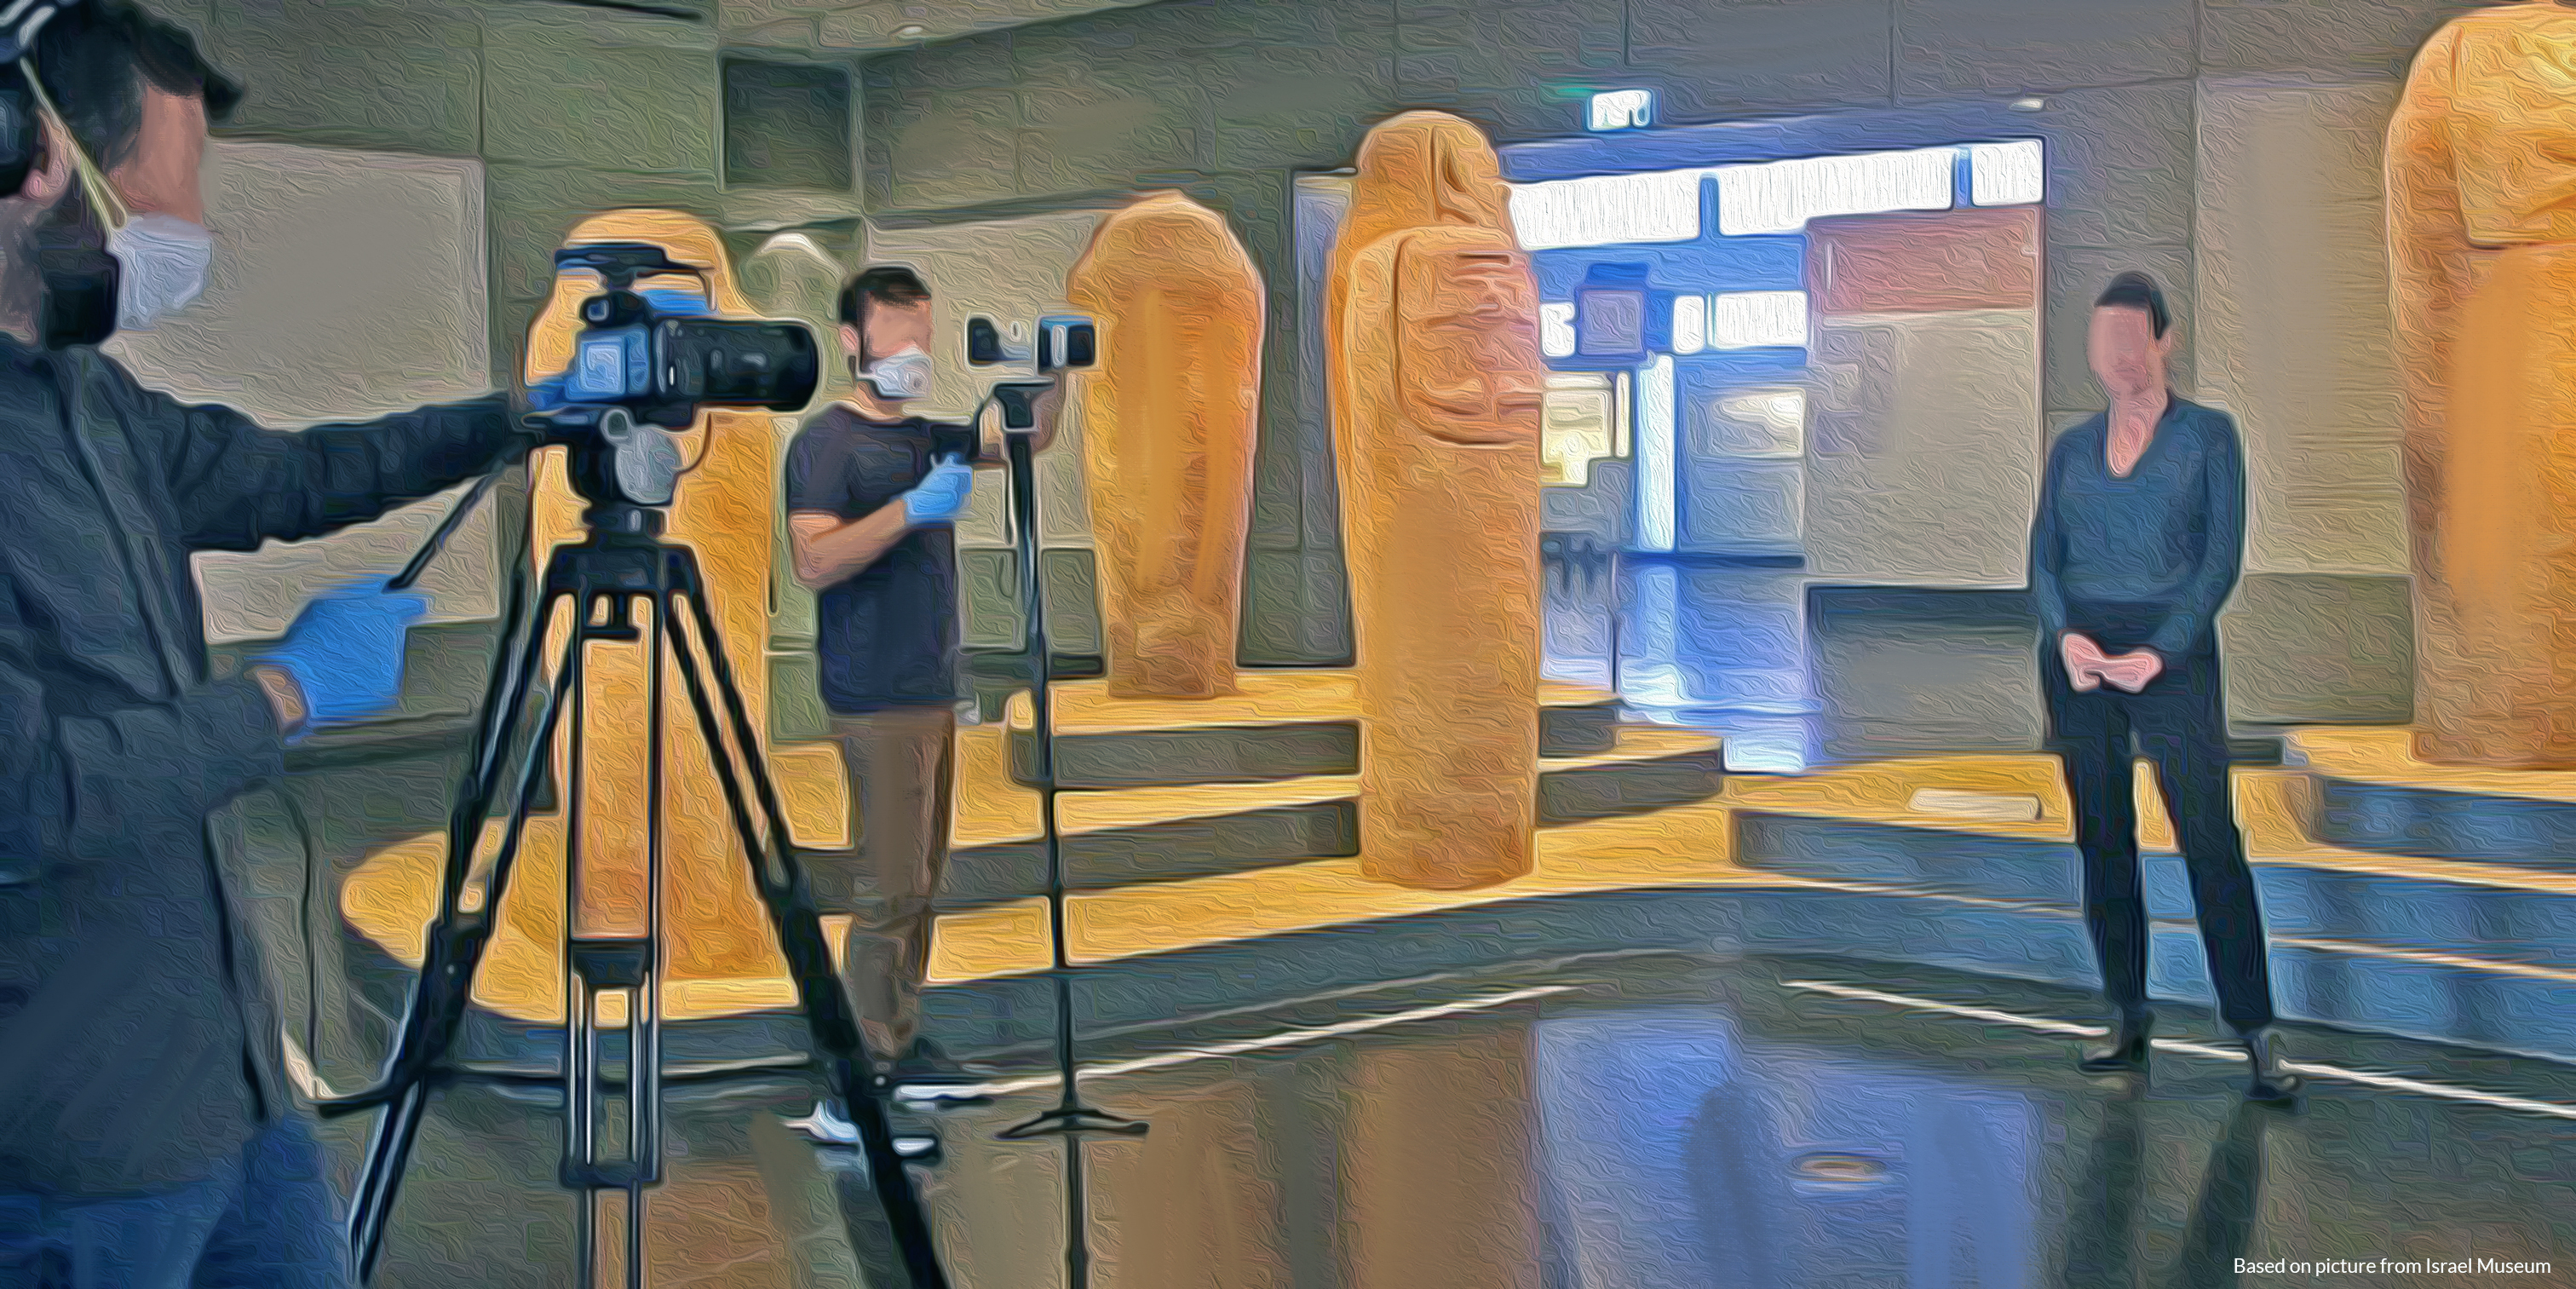 Artwork image of filming taking place inside a history museum.